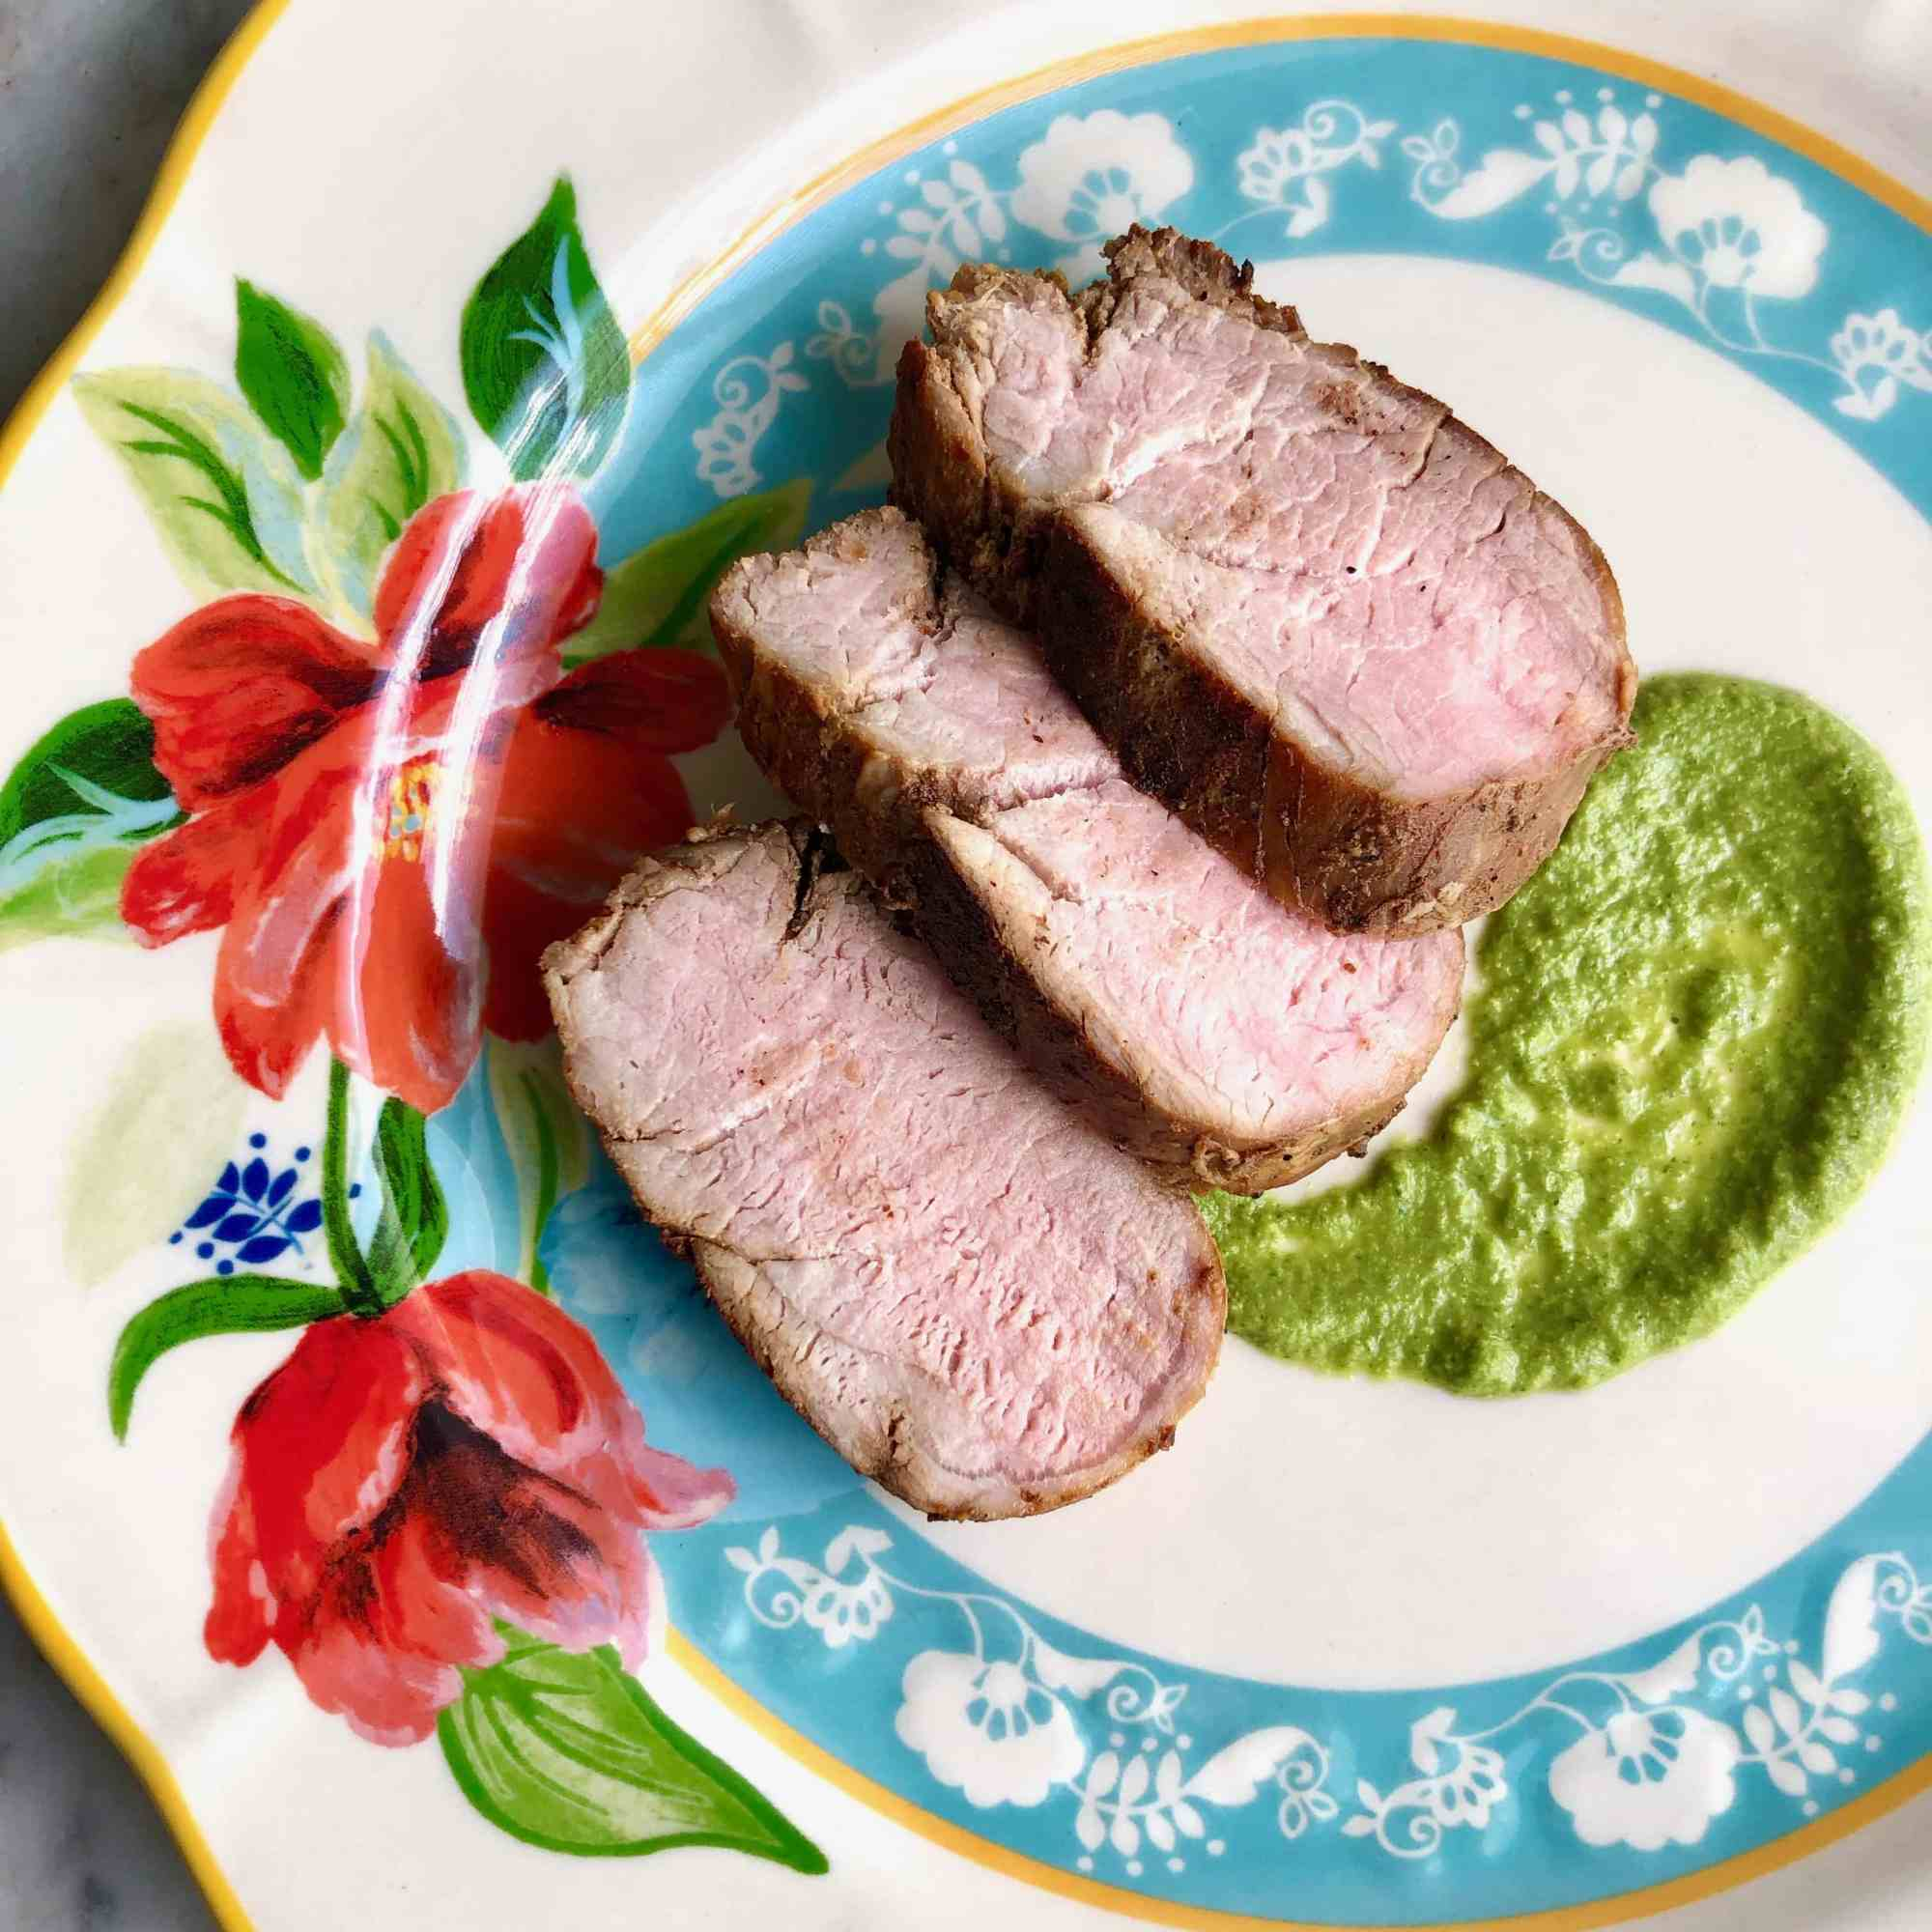 grilled pork tenderloin with chimichurri sauce on a floral plate